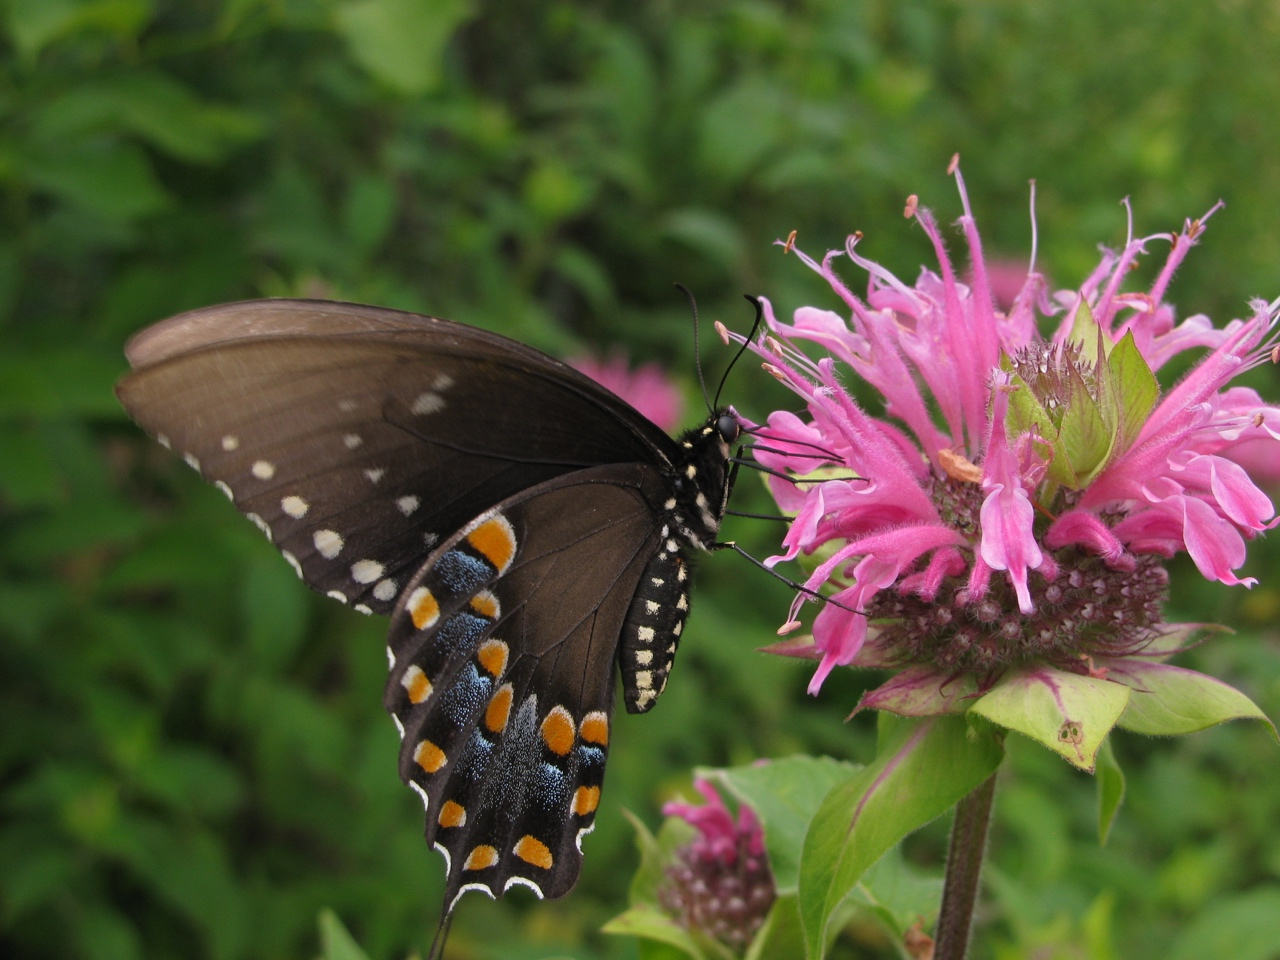 The Scientific Name is Monarda fistulosa. You will likely hear them called Wild Bergamot. This picture shows the Close-up of flower head being visited ba a Black Swallowtail butterfly of Monarda fistulosa